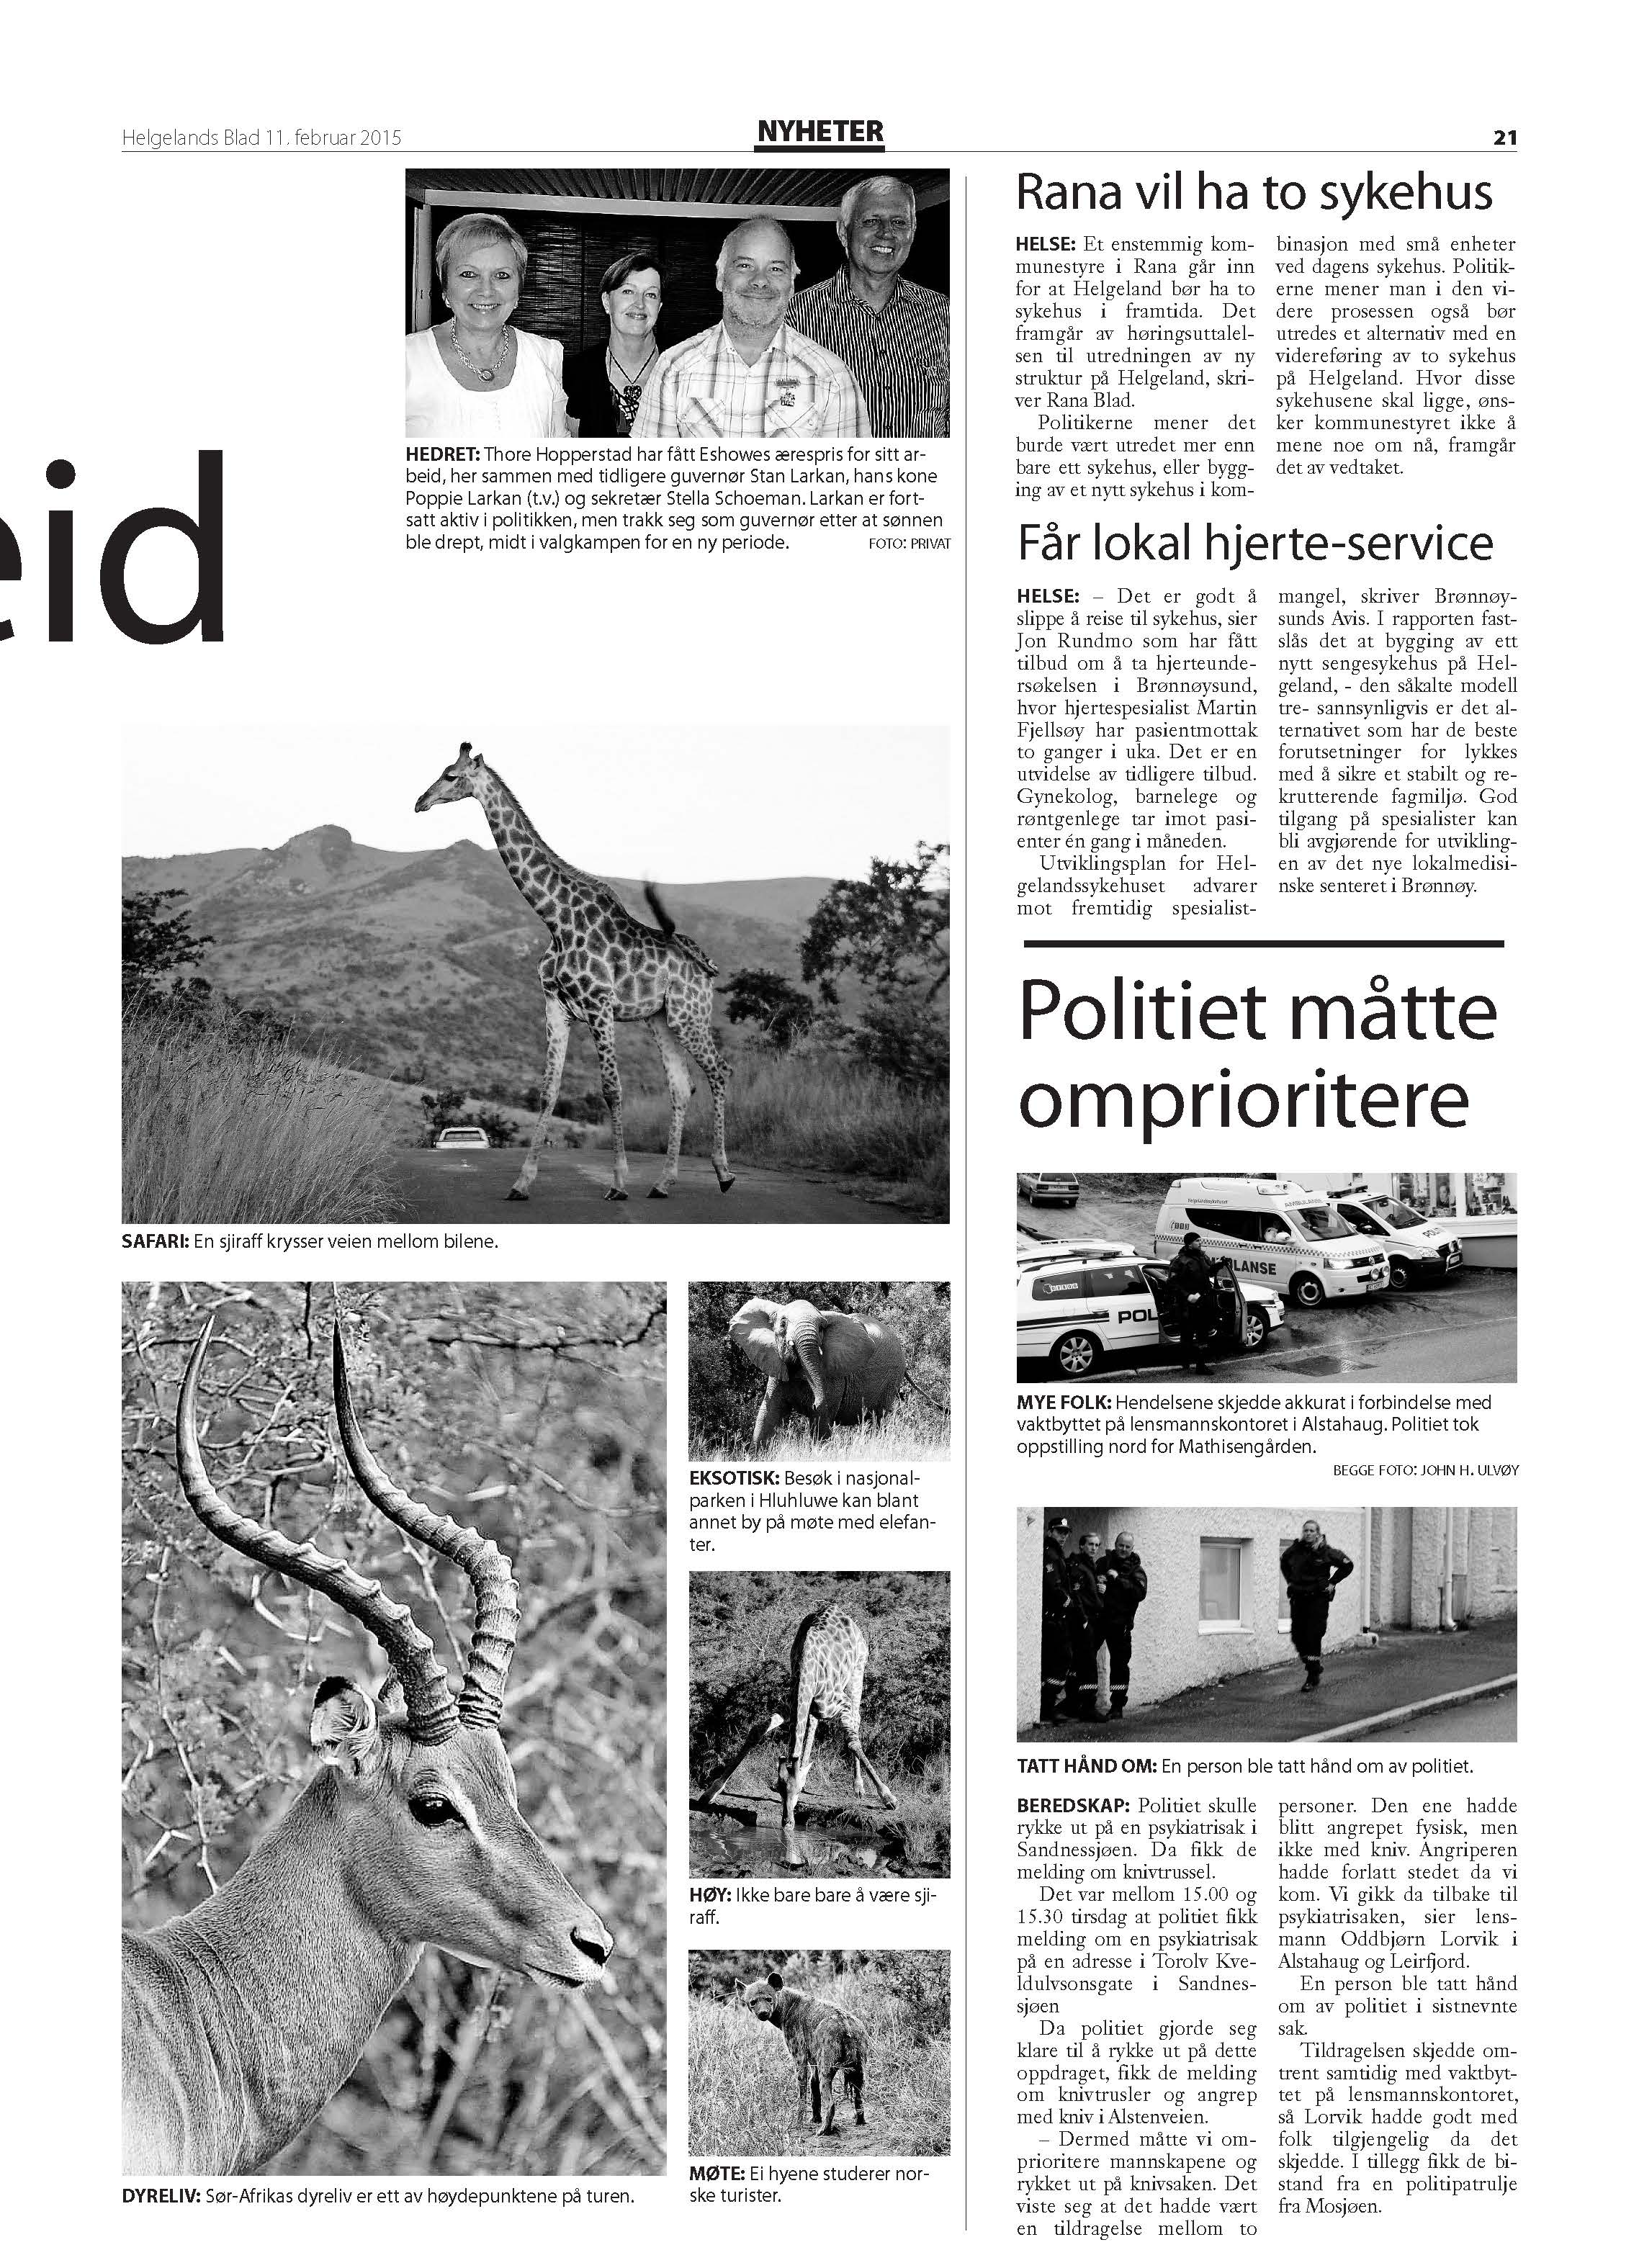 4-pages news article in Helgelands Blad, Norway in 2015, p4